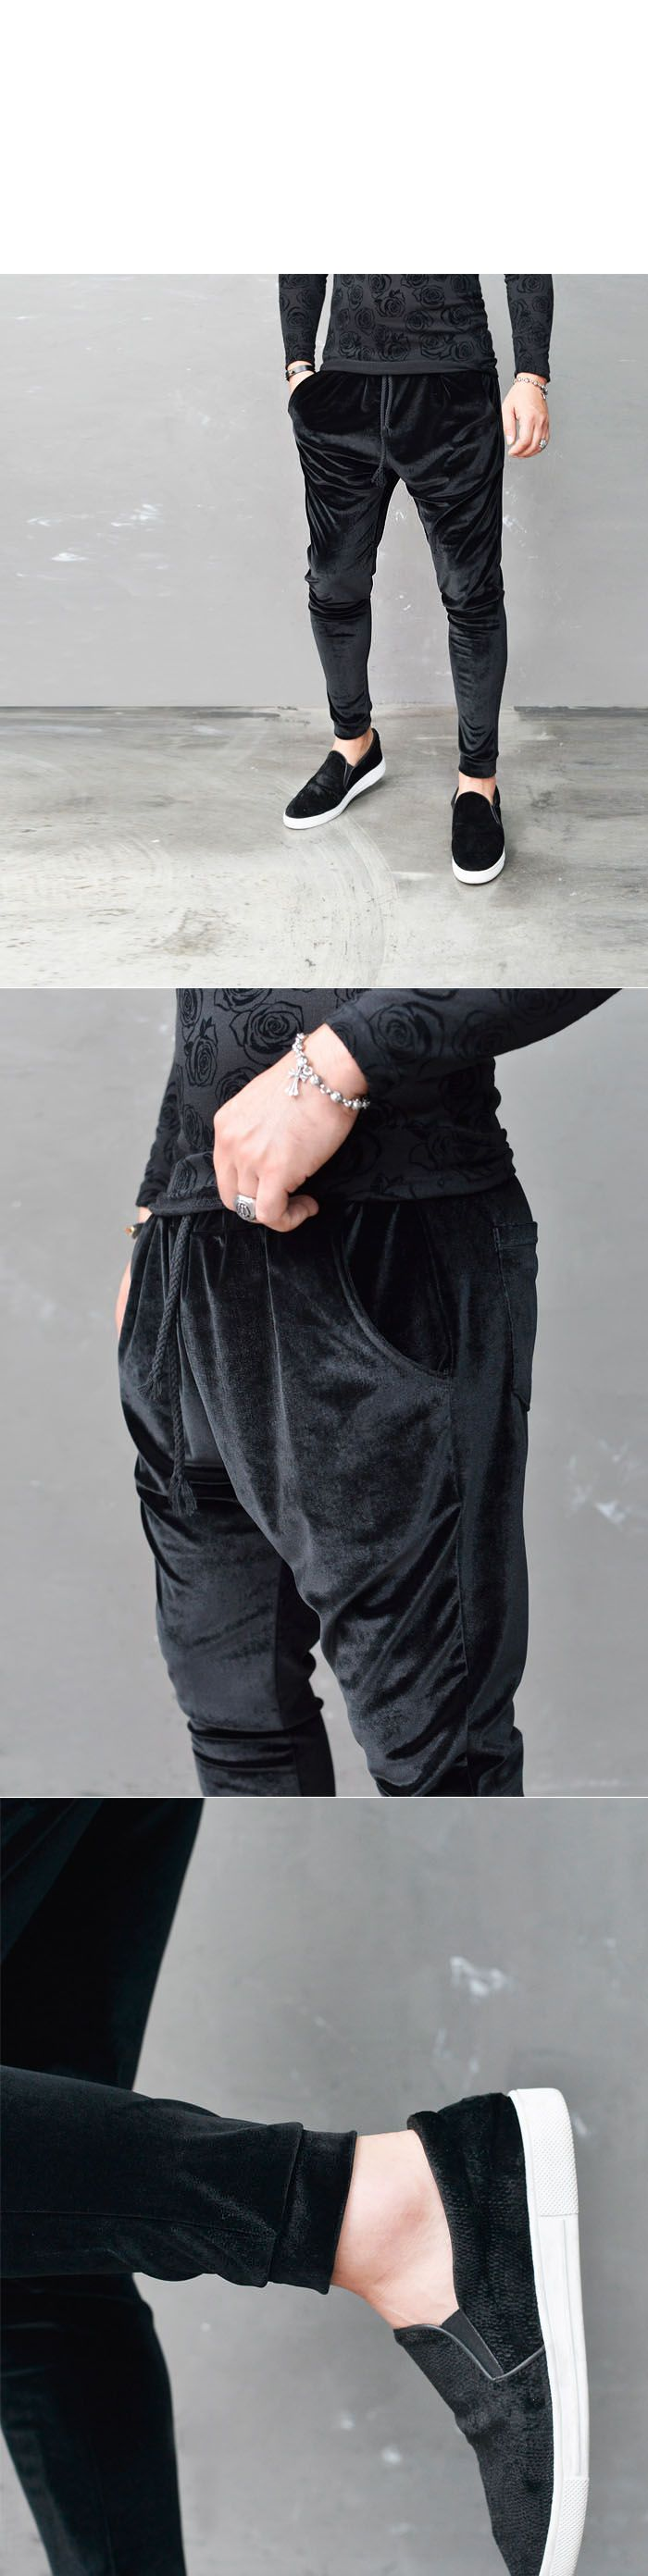 Bottoms :: Sweatpants :: Velvet Baggy Cuffed Jogger-Sweatpants 225 - Mens Fashion Clothing For An Attractive Guy Look